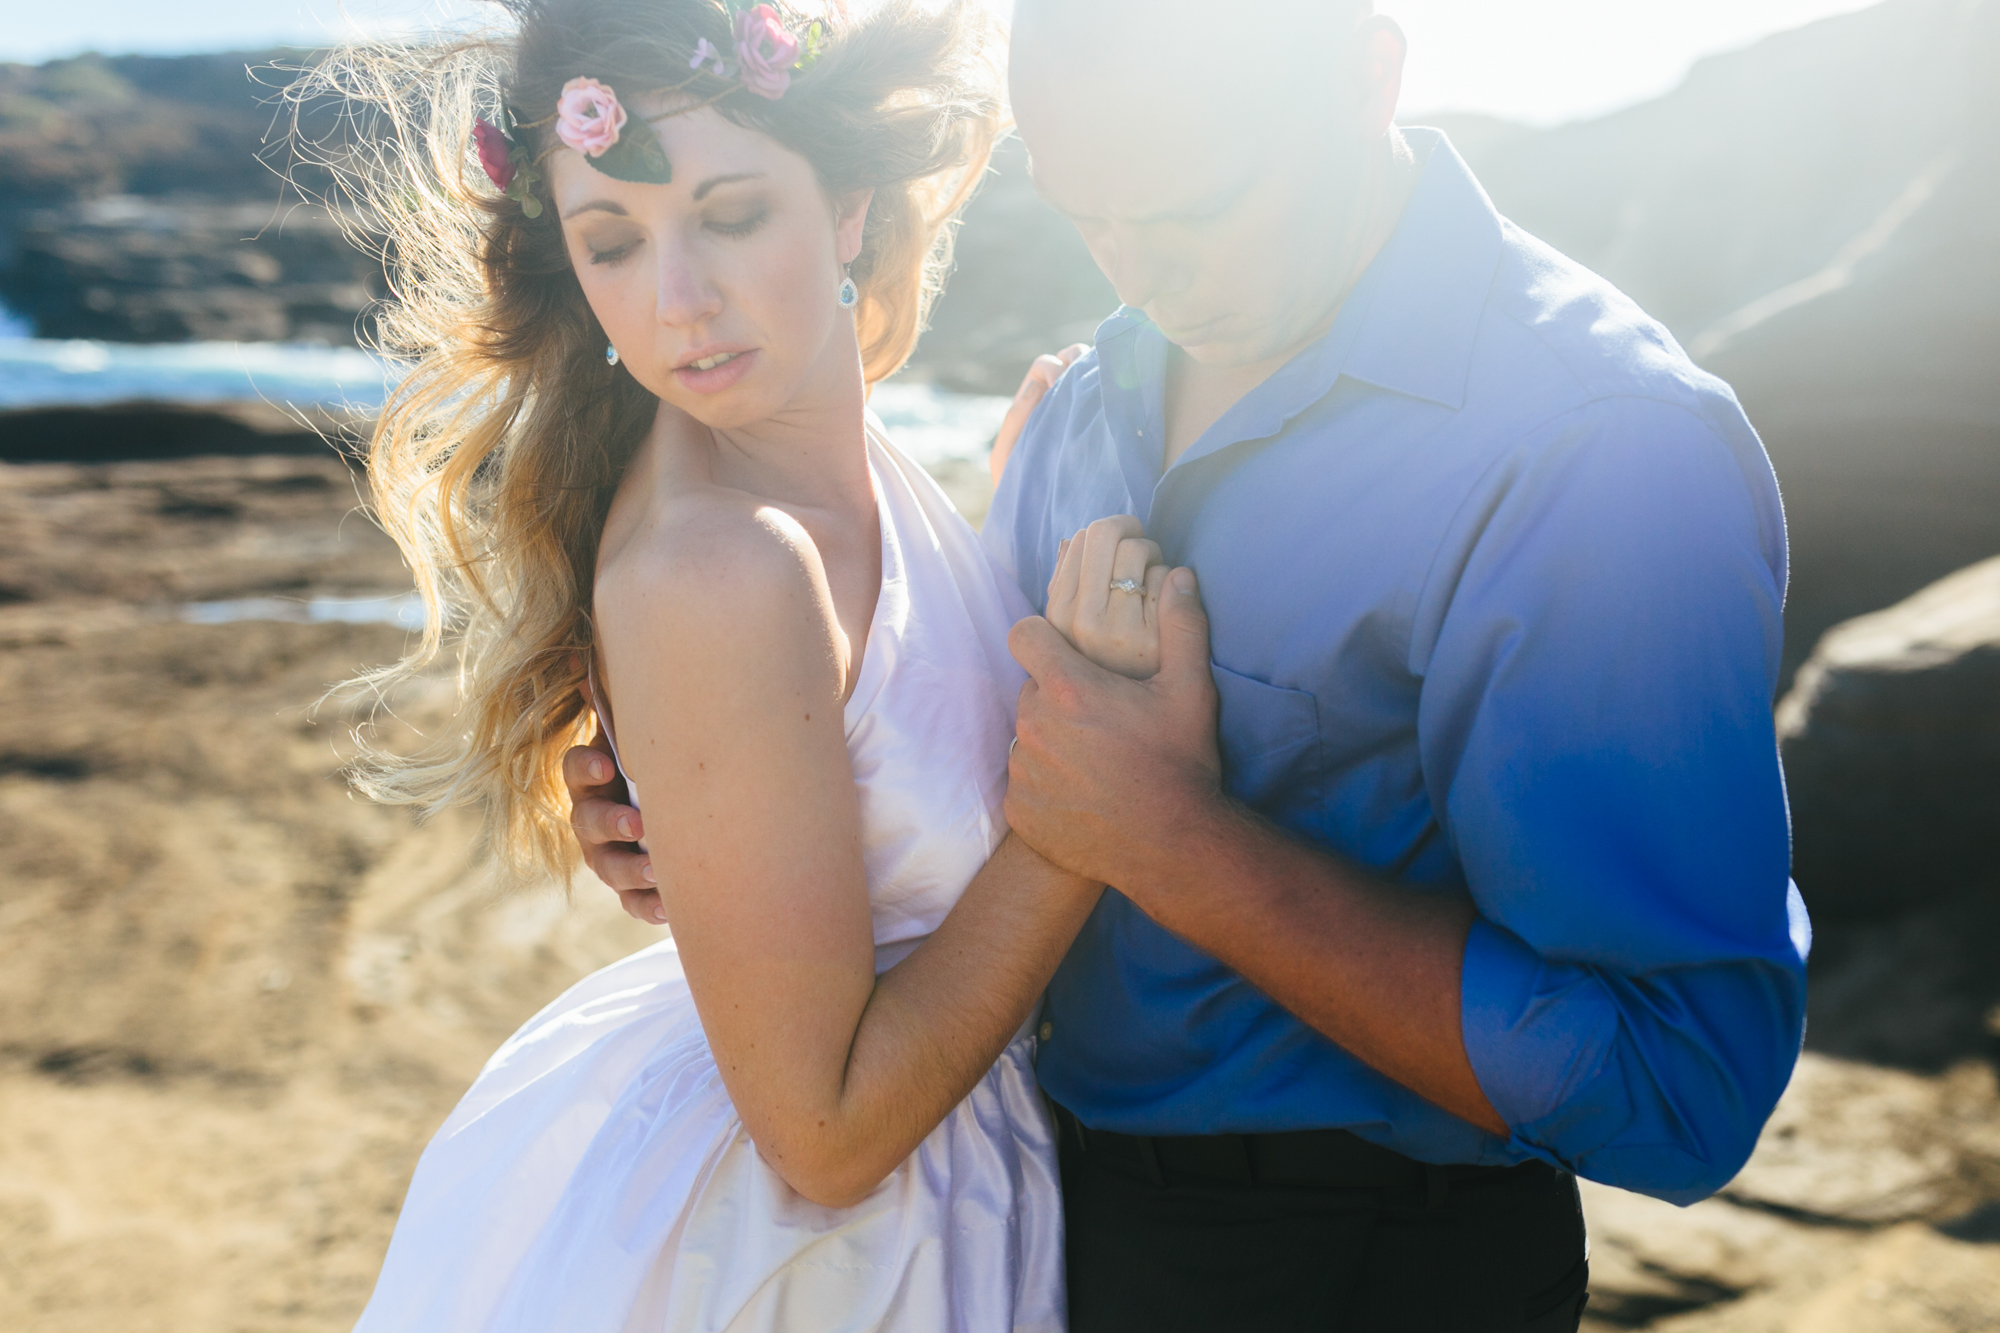 Oahu Wedding Photographer- Hawaii Destination Wedding- kahauloa cove- Grace and Jaden Hurtienne Photography (10).jpg